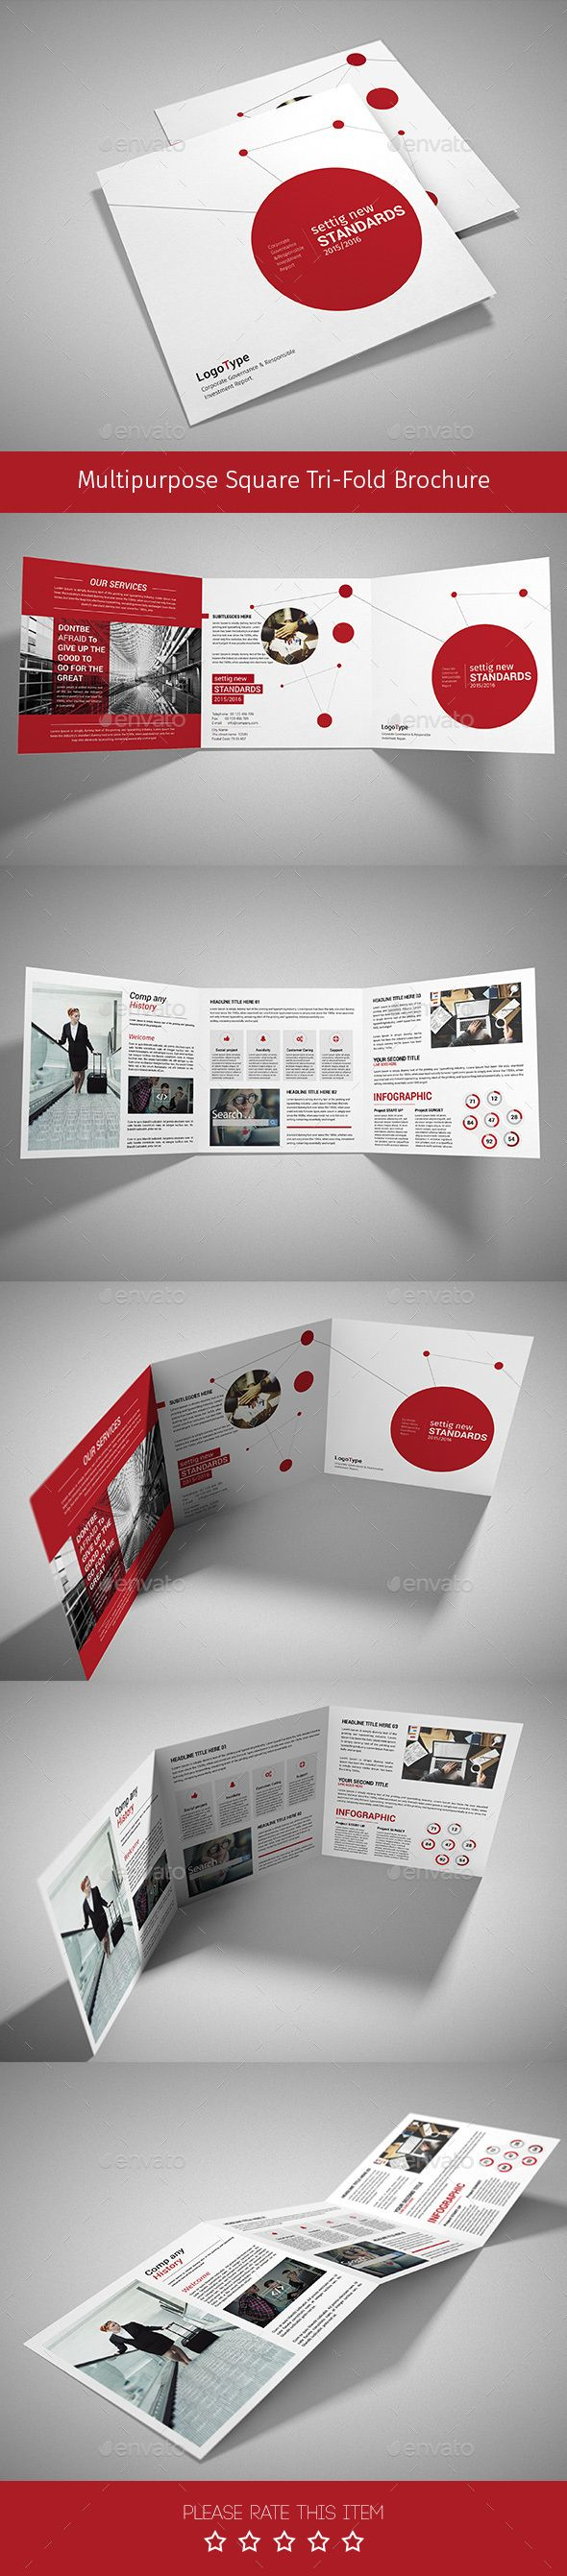 Corporate Tri-fold Square Brochure Template PSD #design Download: http://graphicriver.net/item/corporate-trifold-square-brochure-07/14342890?ref=ksioks